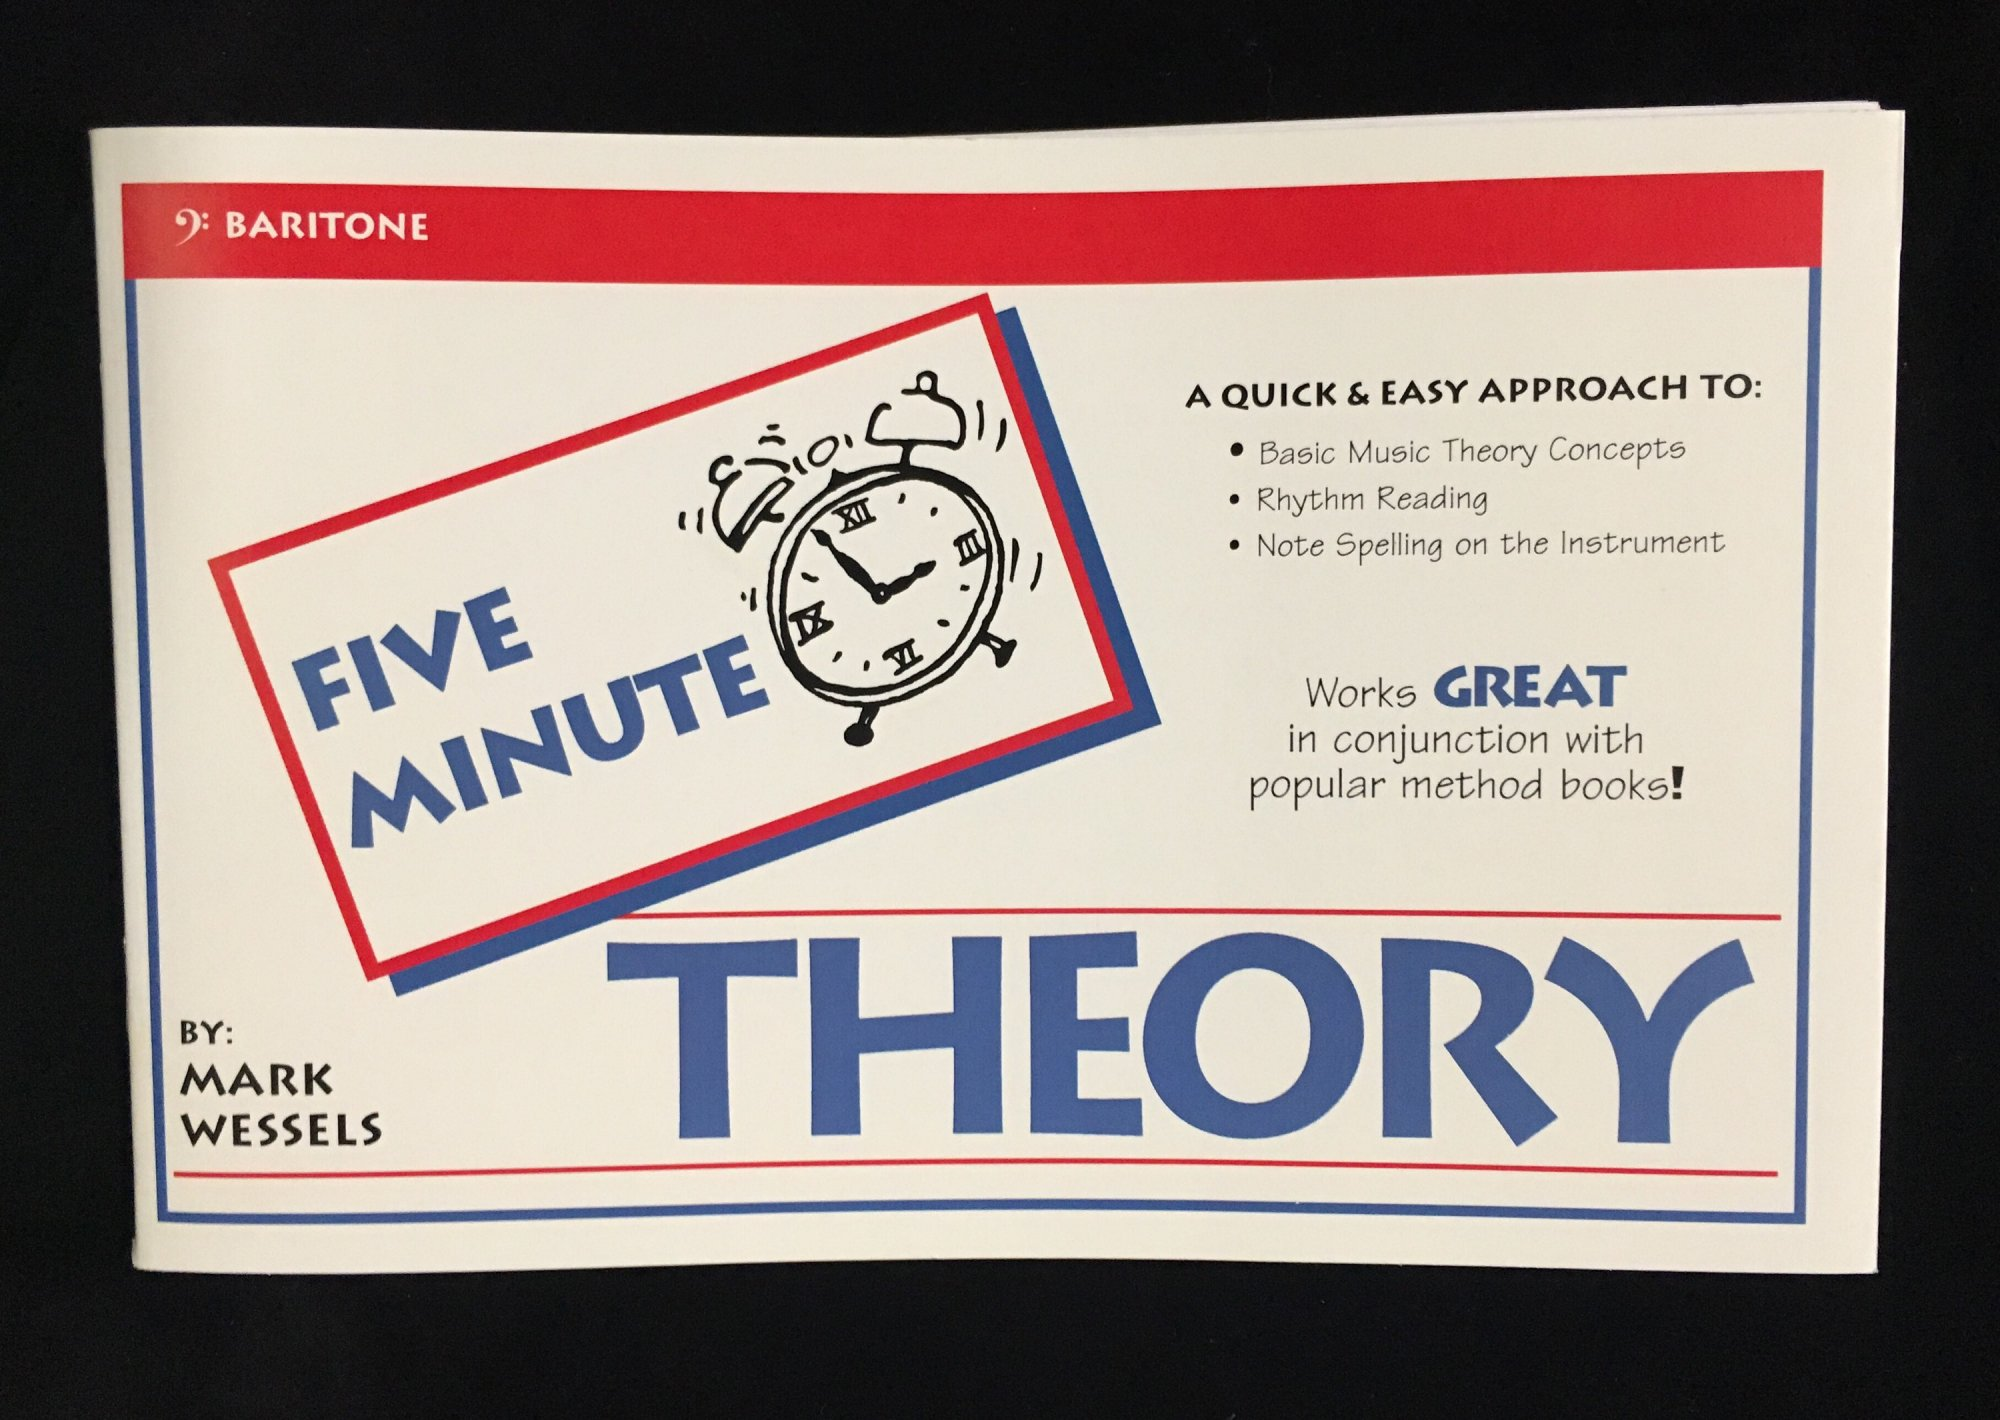 Five Minute Theory - Baritone, Book 1 by Mark Wessels